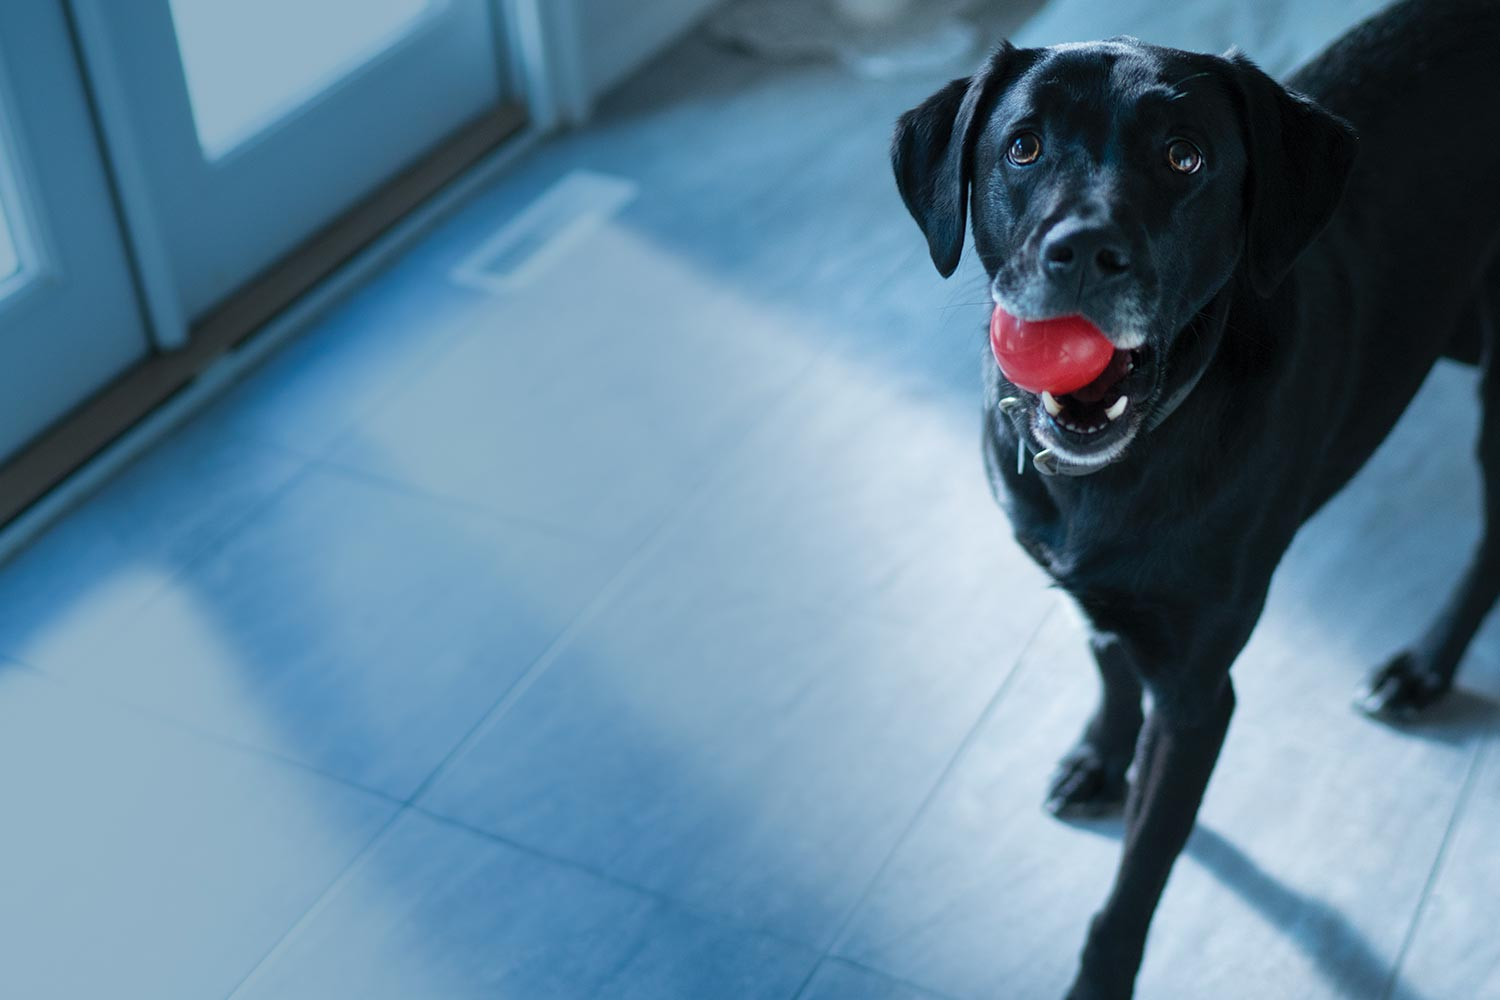 black dog with red ball